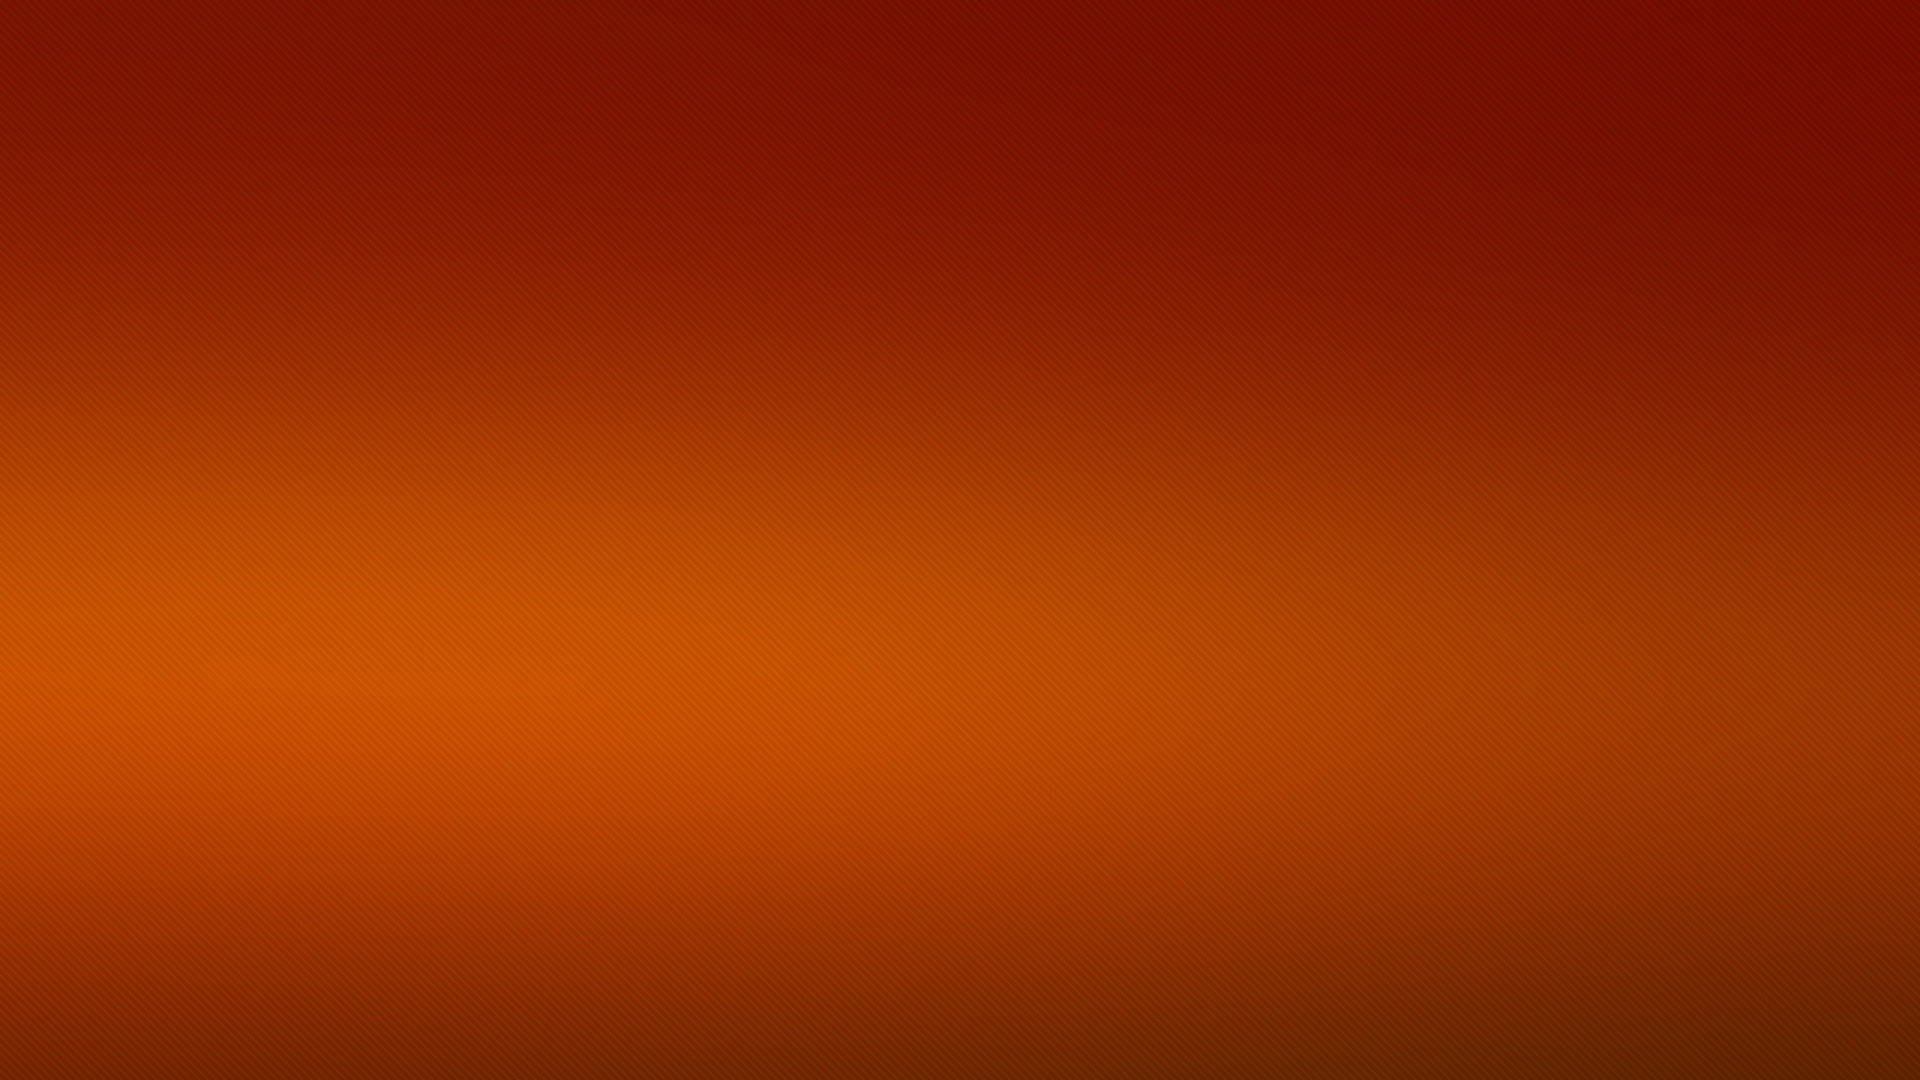 Solid Red hd wallpaper 1080p for pc